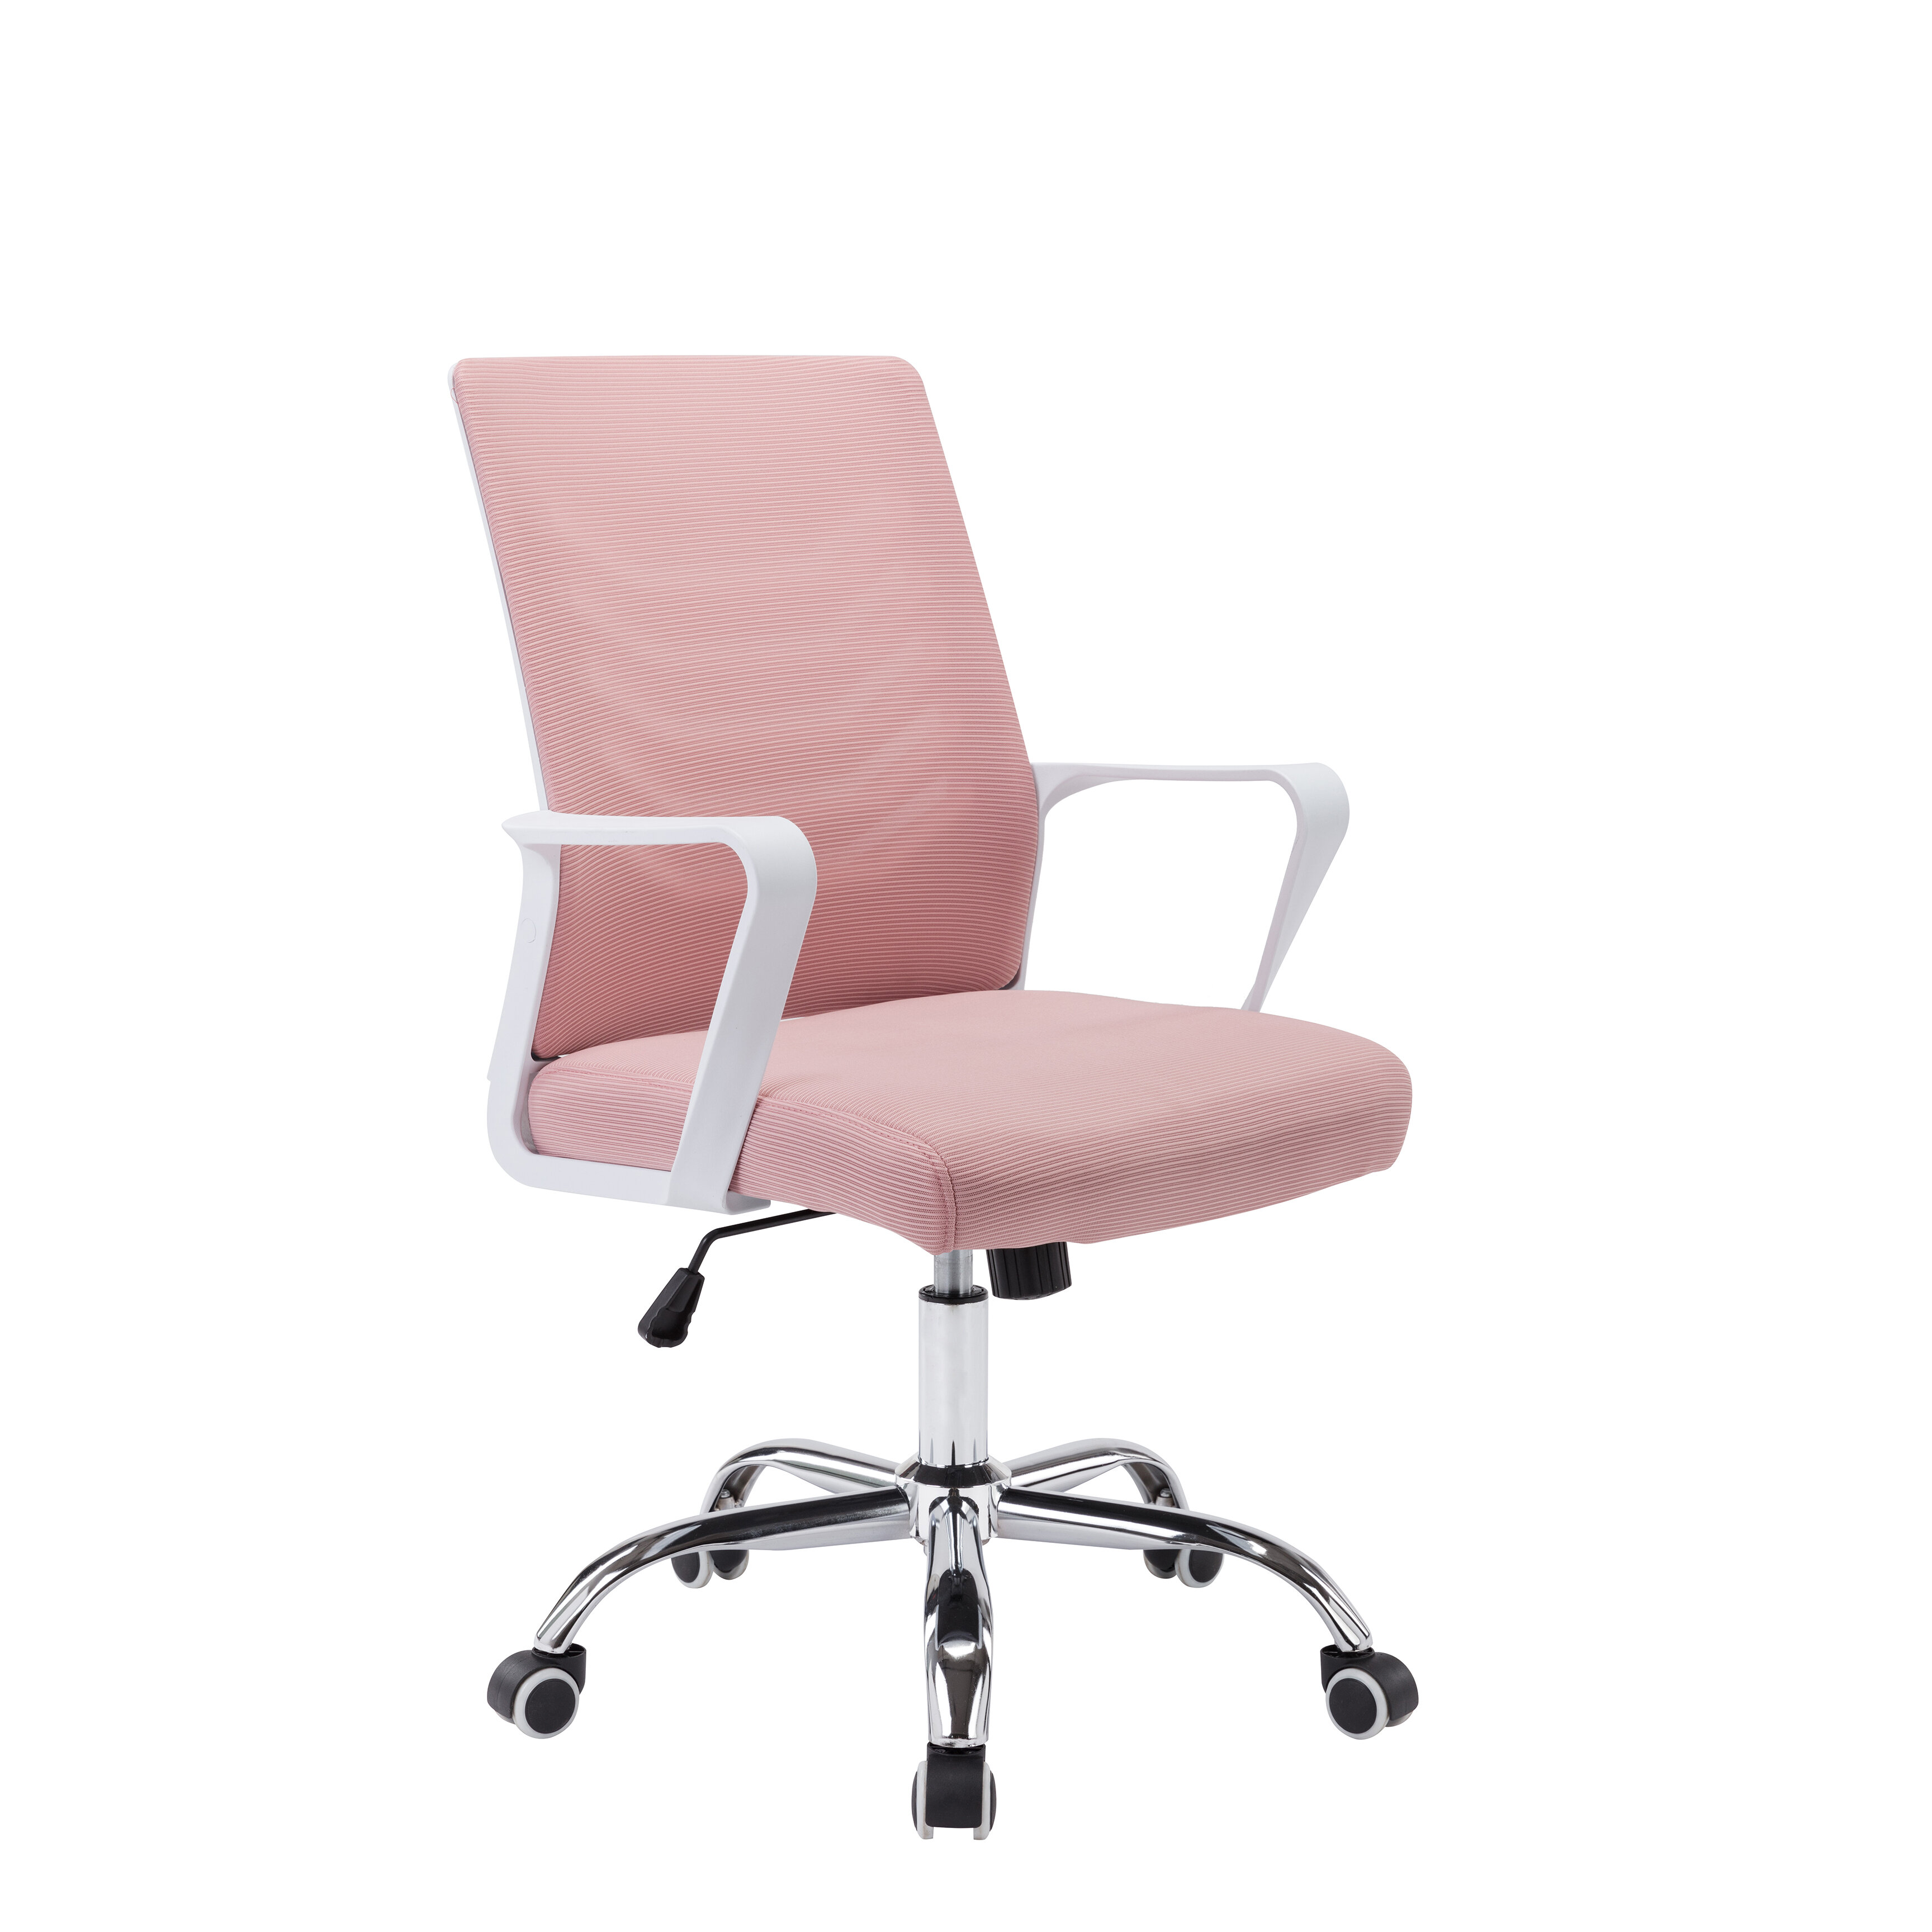 Orren Ellis Magar Mesh Conference Chair Reviews Wayfair